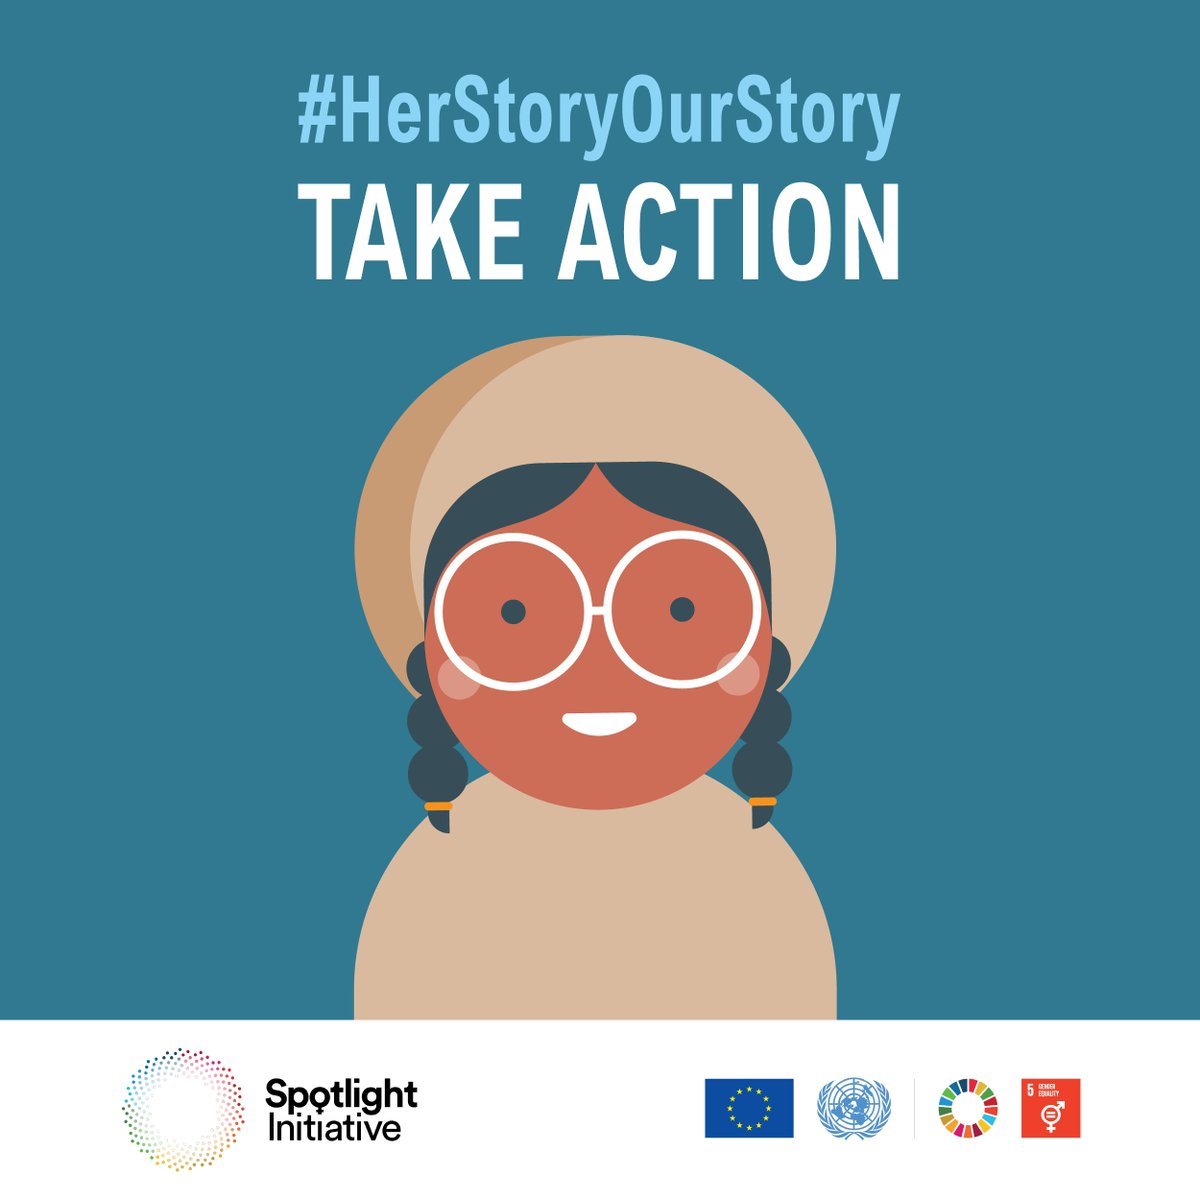 Violence against women and girls must be stopped, everywhere. #EndRapeinWar #HerStoryOurStory #SpotlightEndViolence